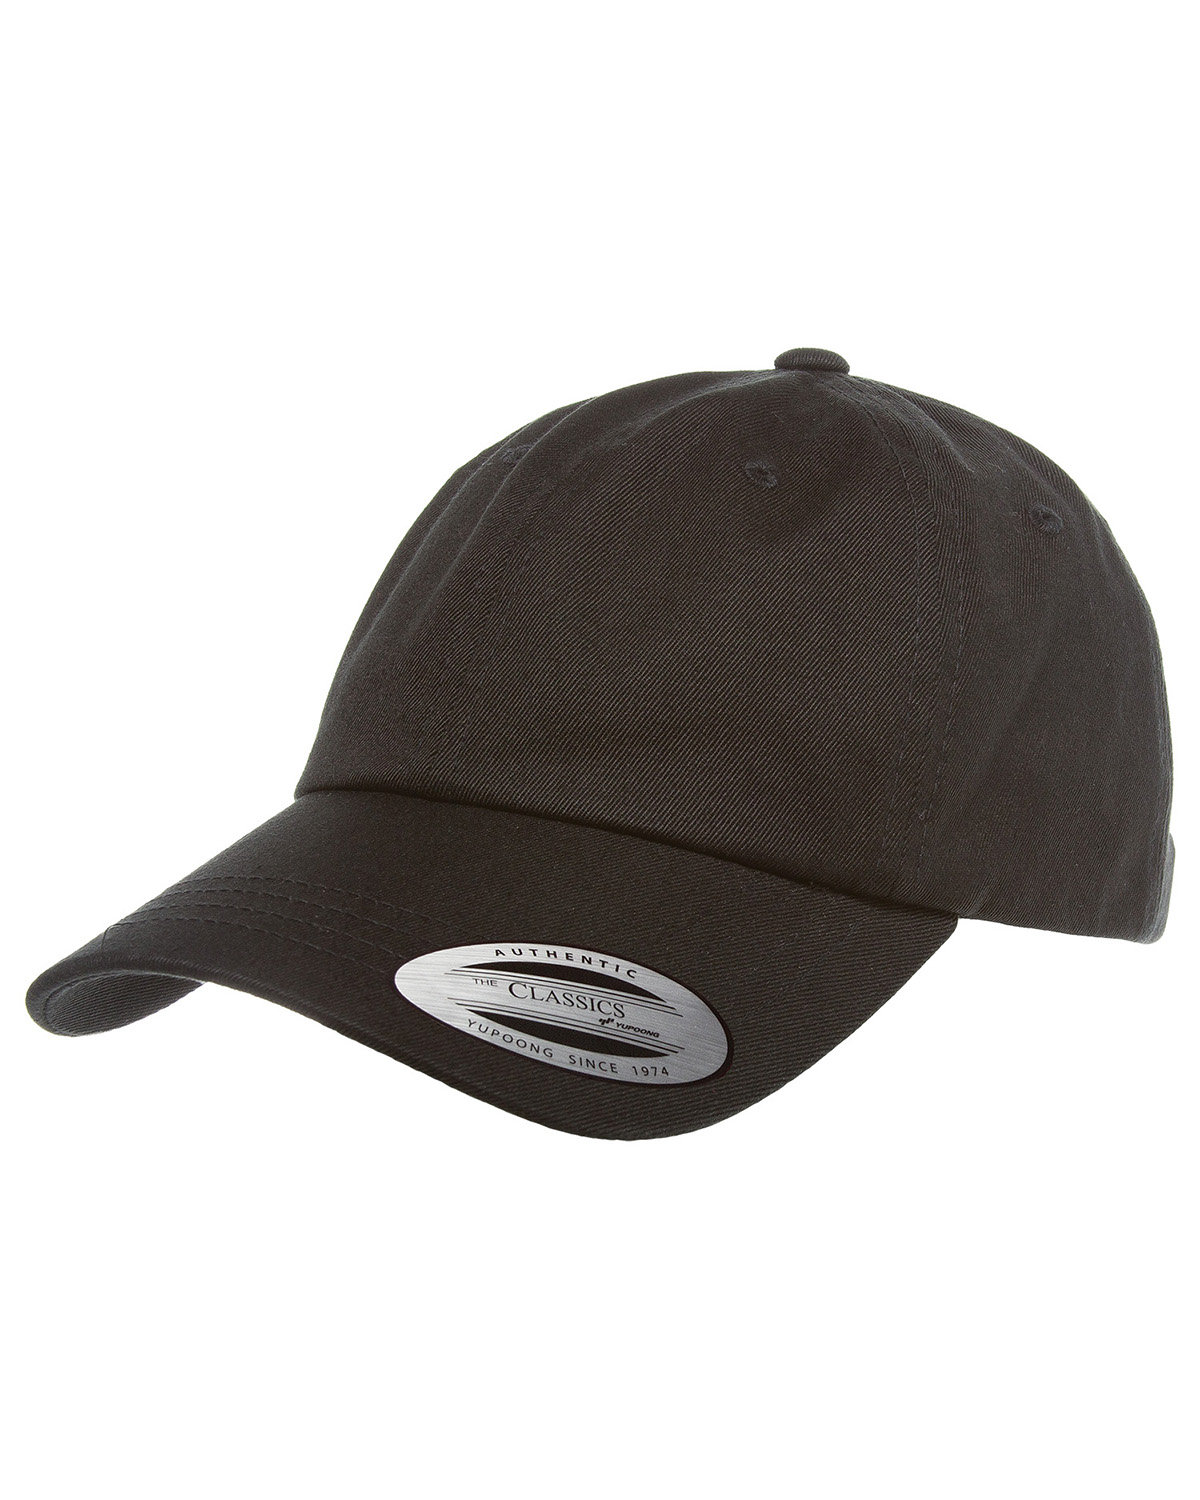 Yupoong Adult Low-Profile Cotton Twill Dad Cap BLACK